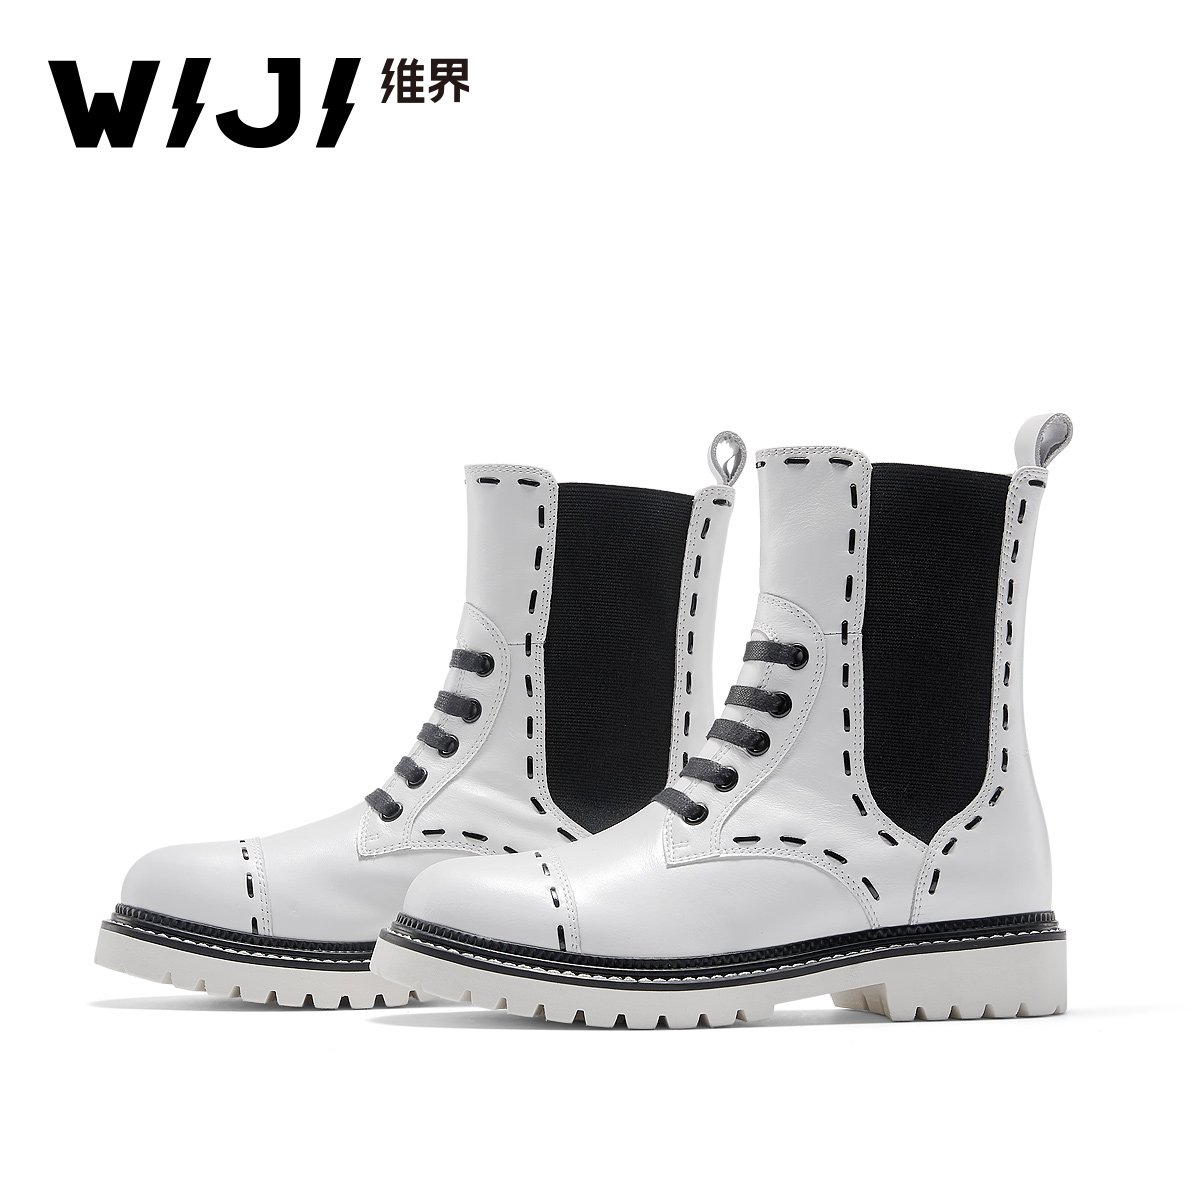 WIJI Wide World Collision Chelsea Boots Summer Personality New Martin Boots Large Boots High Boots Fashion High Help Women's Shoes